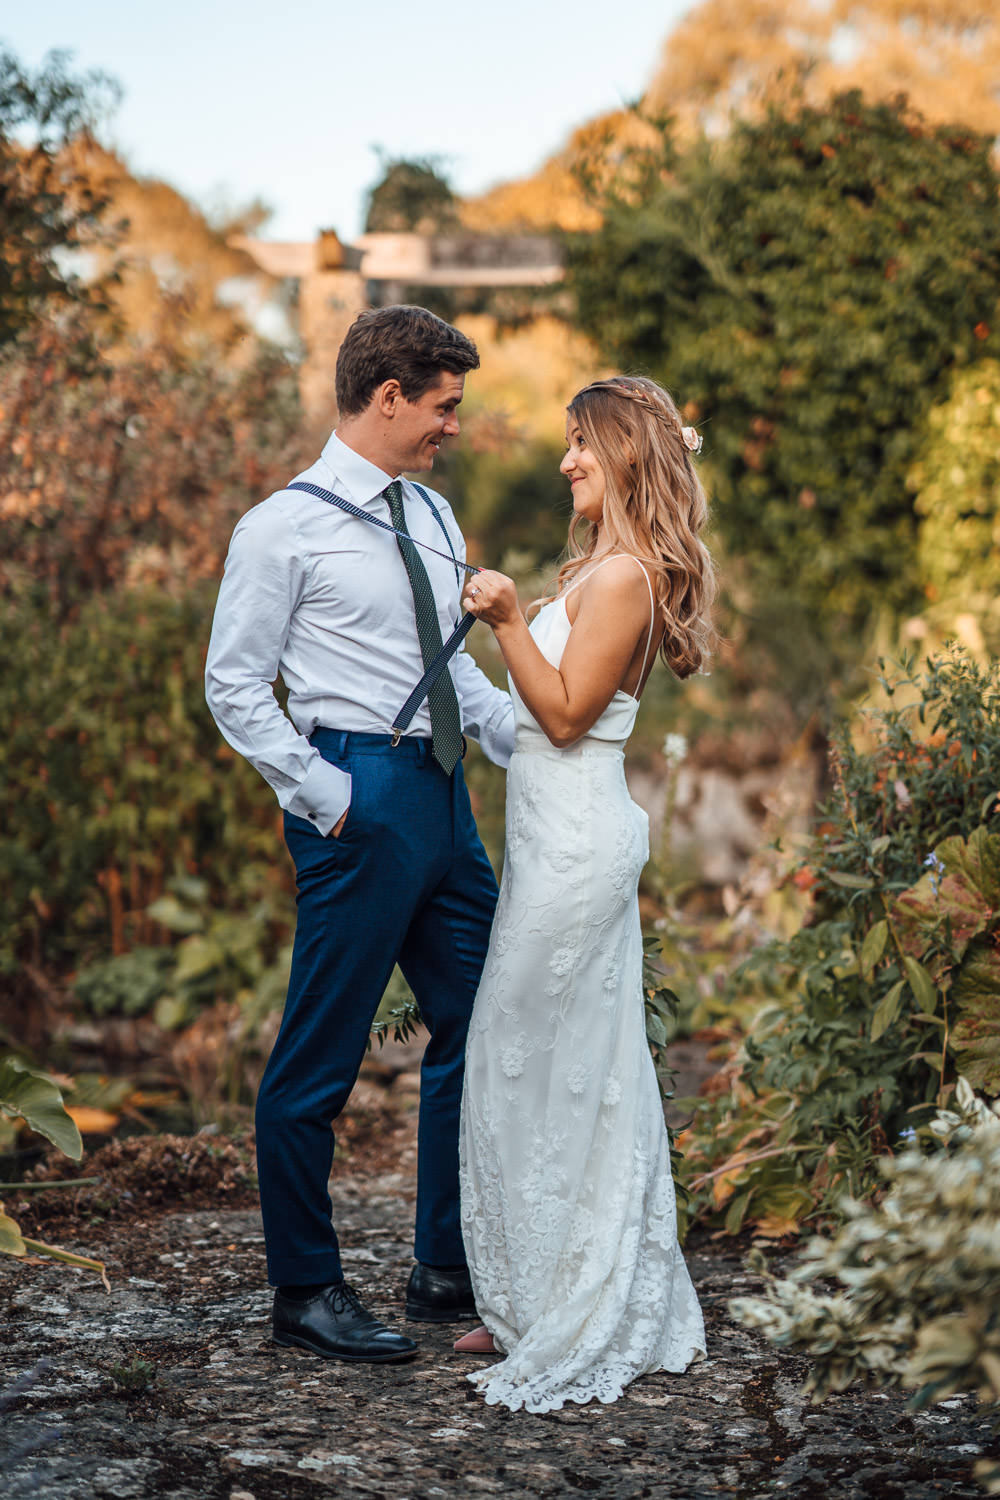 halfpenny london wedding dress in oxleaze barn wedding